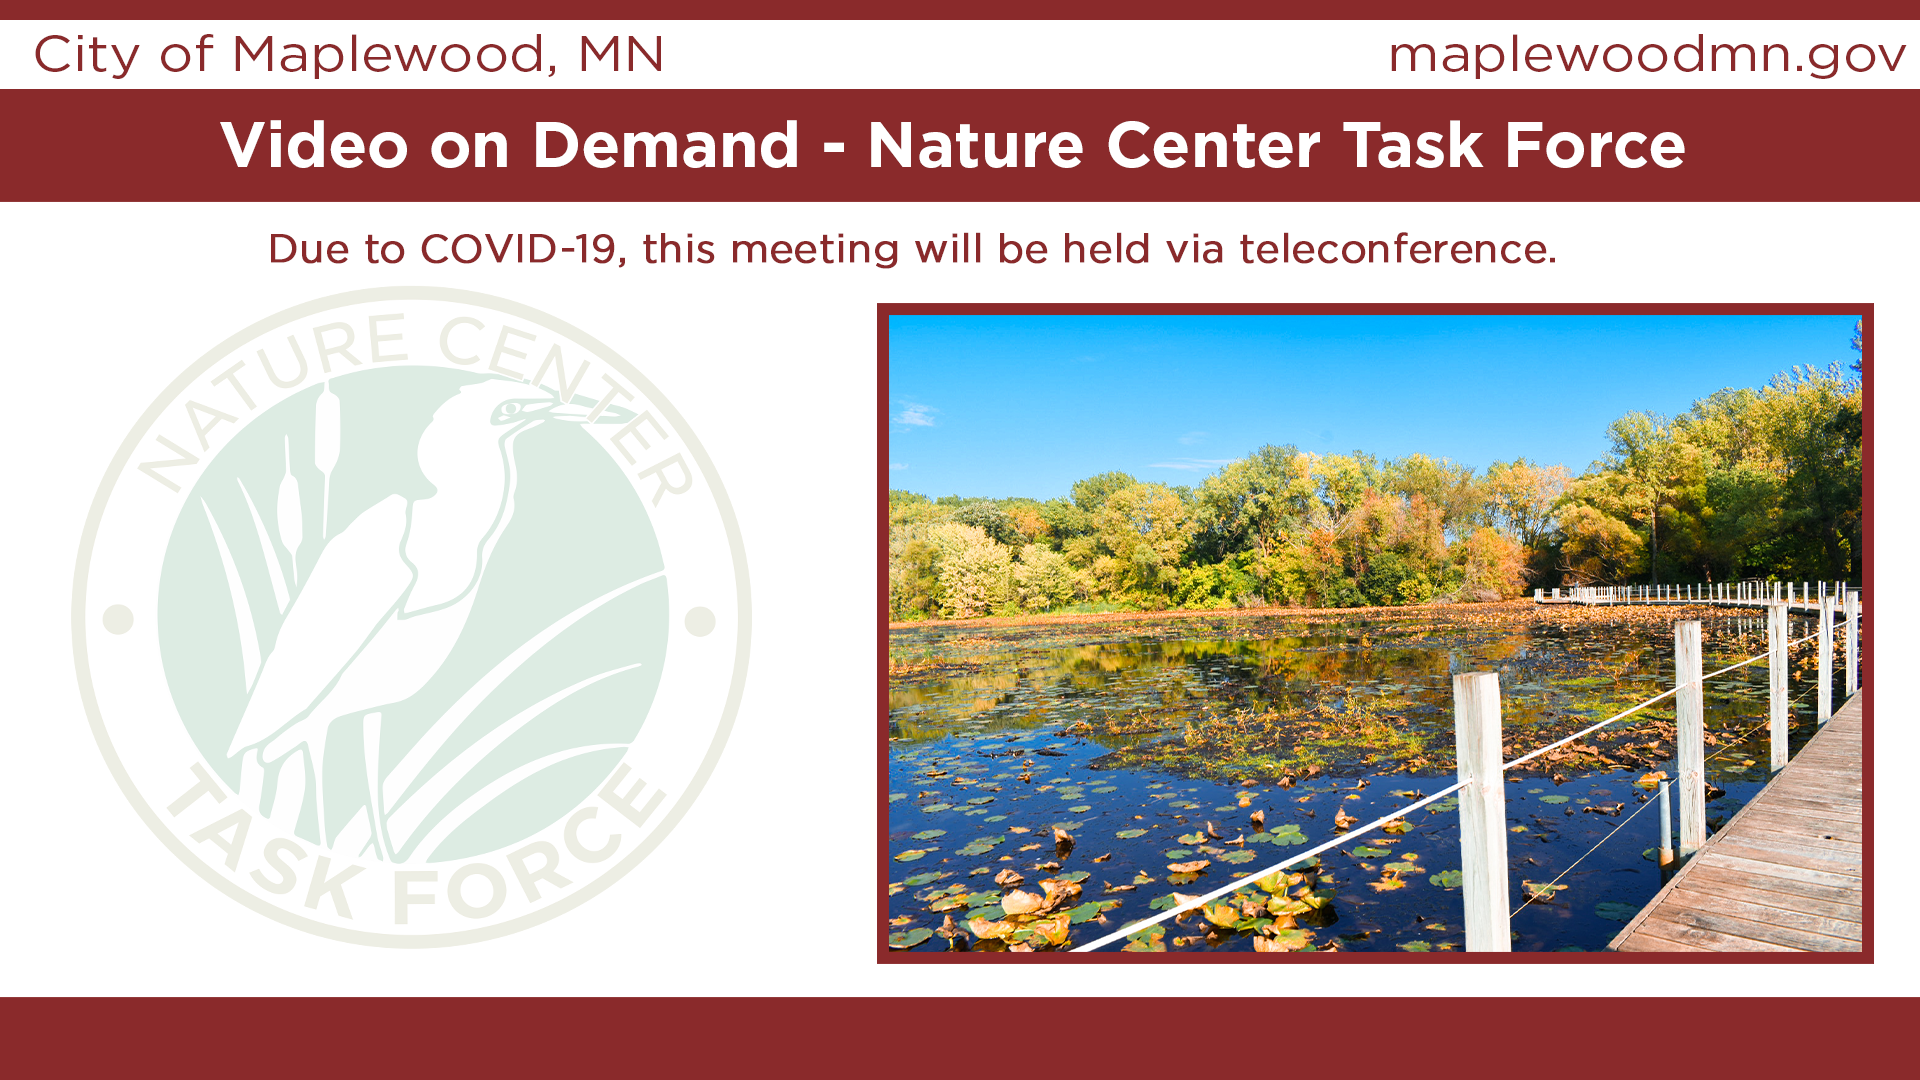 Nature Center Task Force